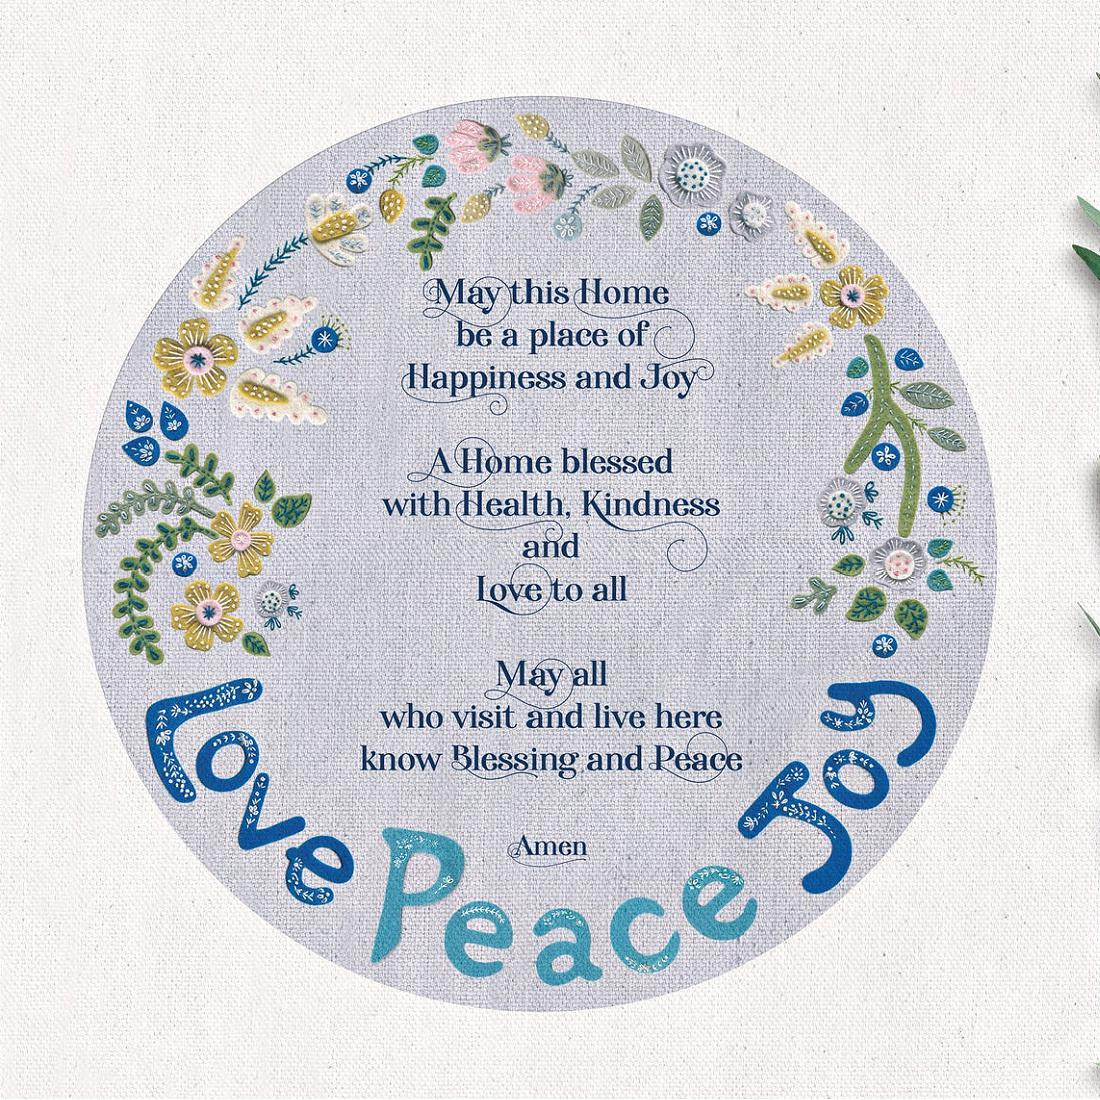 Love Peace Joy Home Blessing